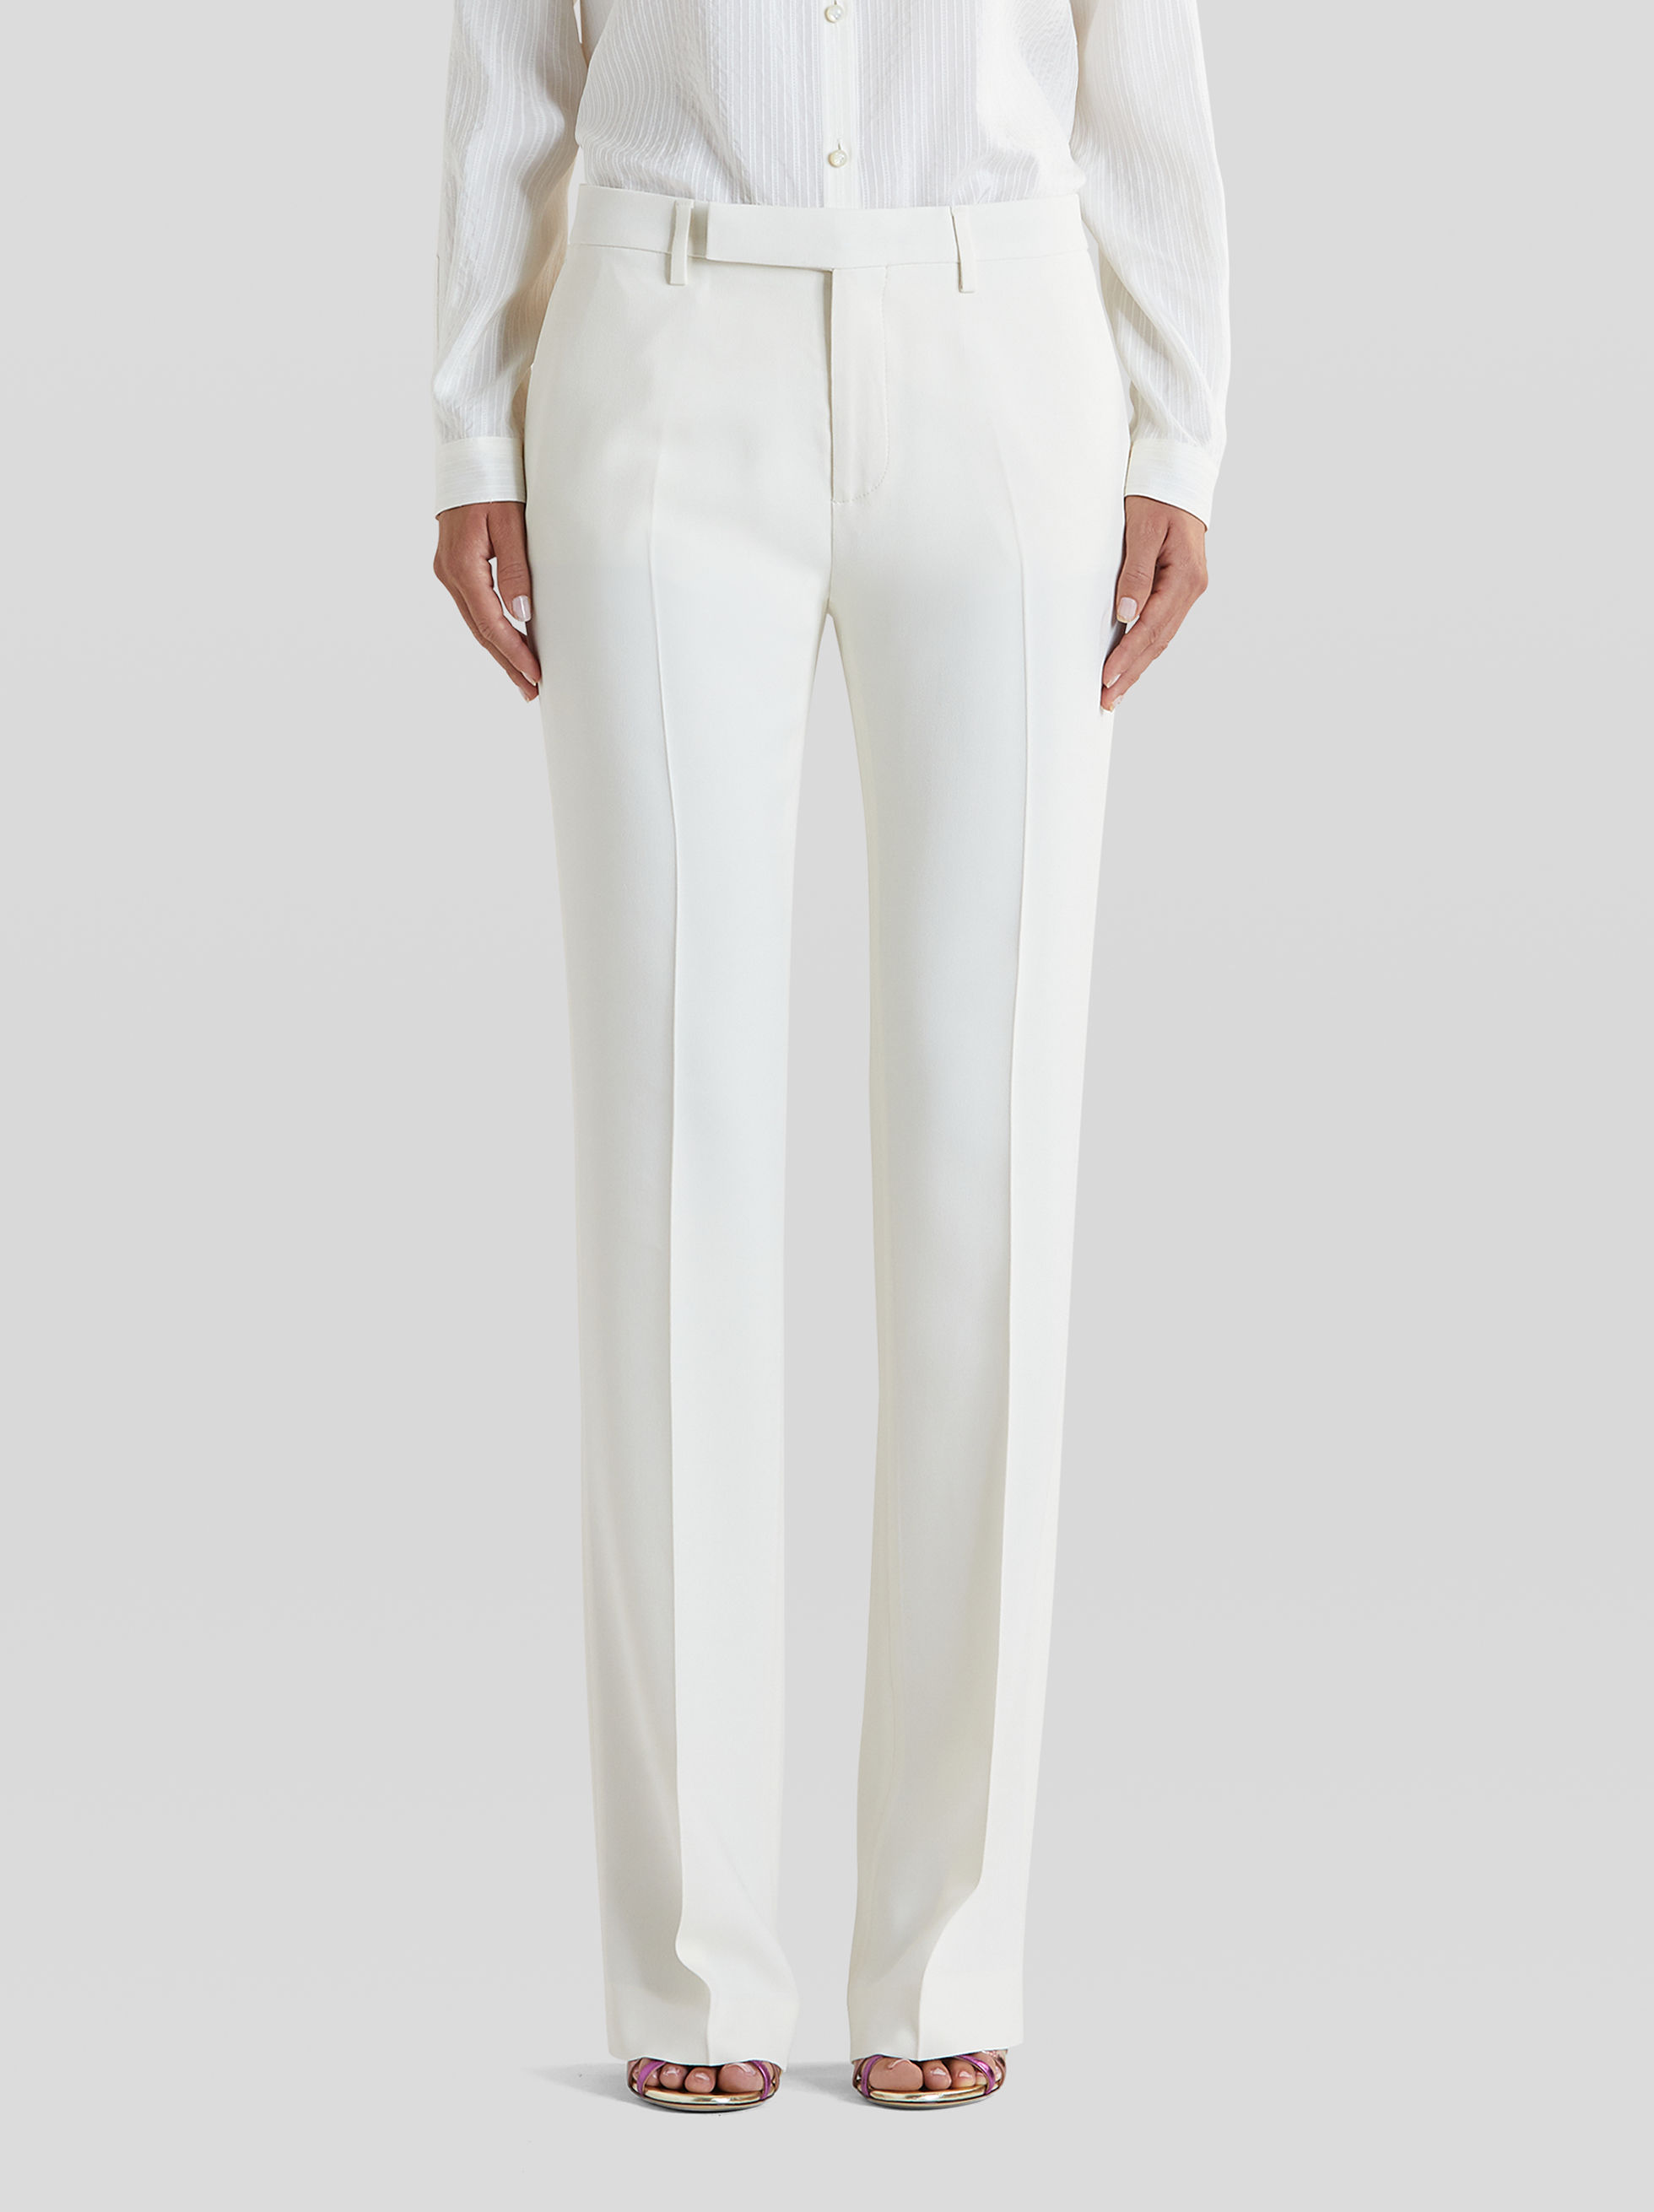 TAILORED JACQUARD TROUSERS